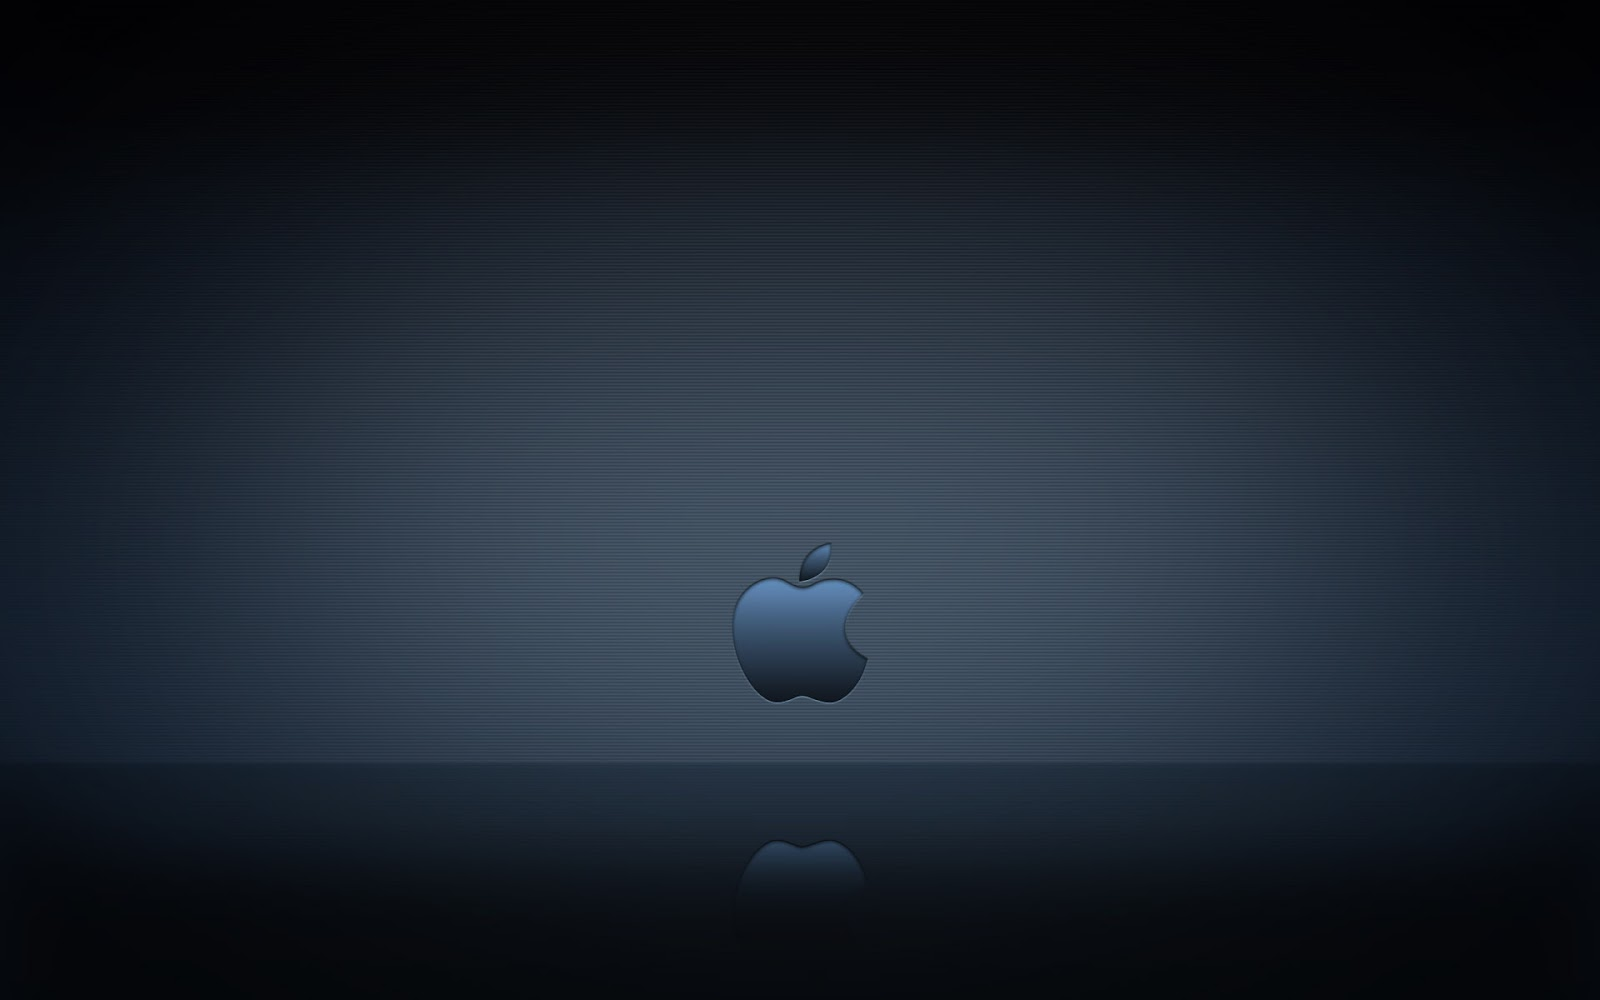 Apple hd wallpapers 1080p hd wallpapers high definition for Wallpaper hd 1080p home